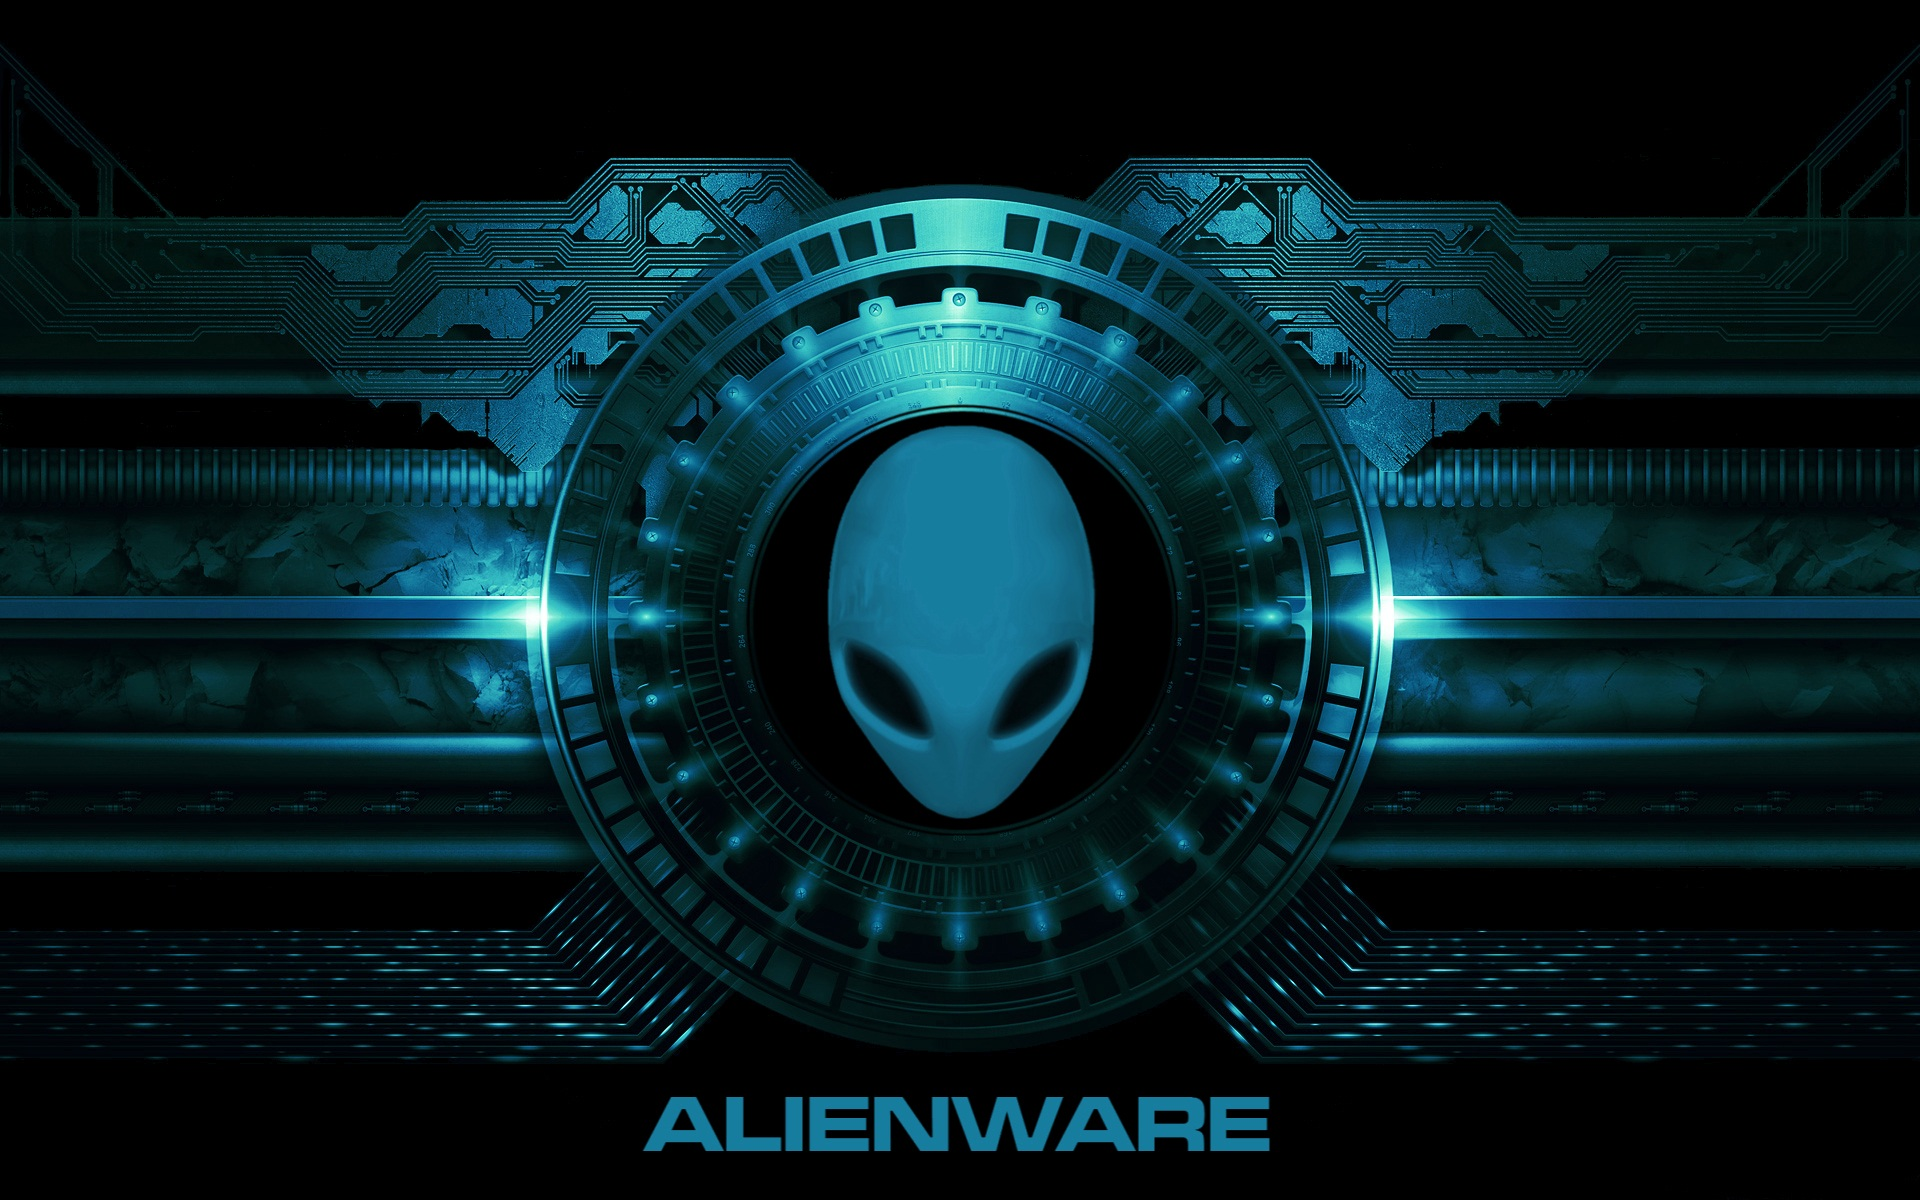 Alienware Wallpaper Blue - HD Wallpapers